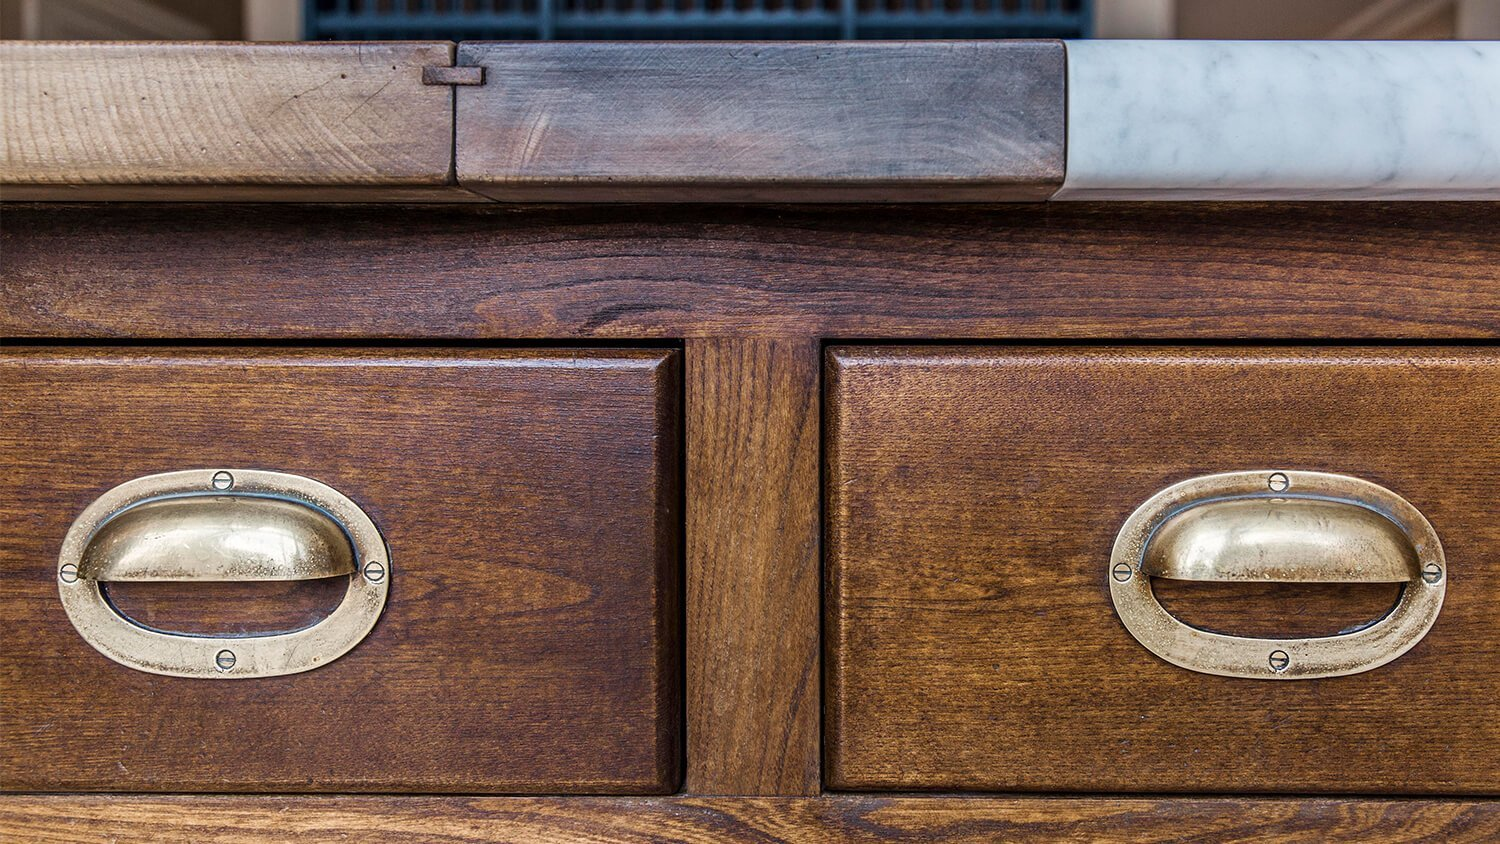 Cast drawer handles based on those in Lanhydrock kitchen